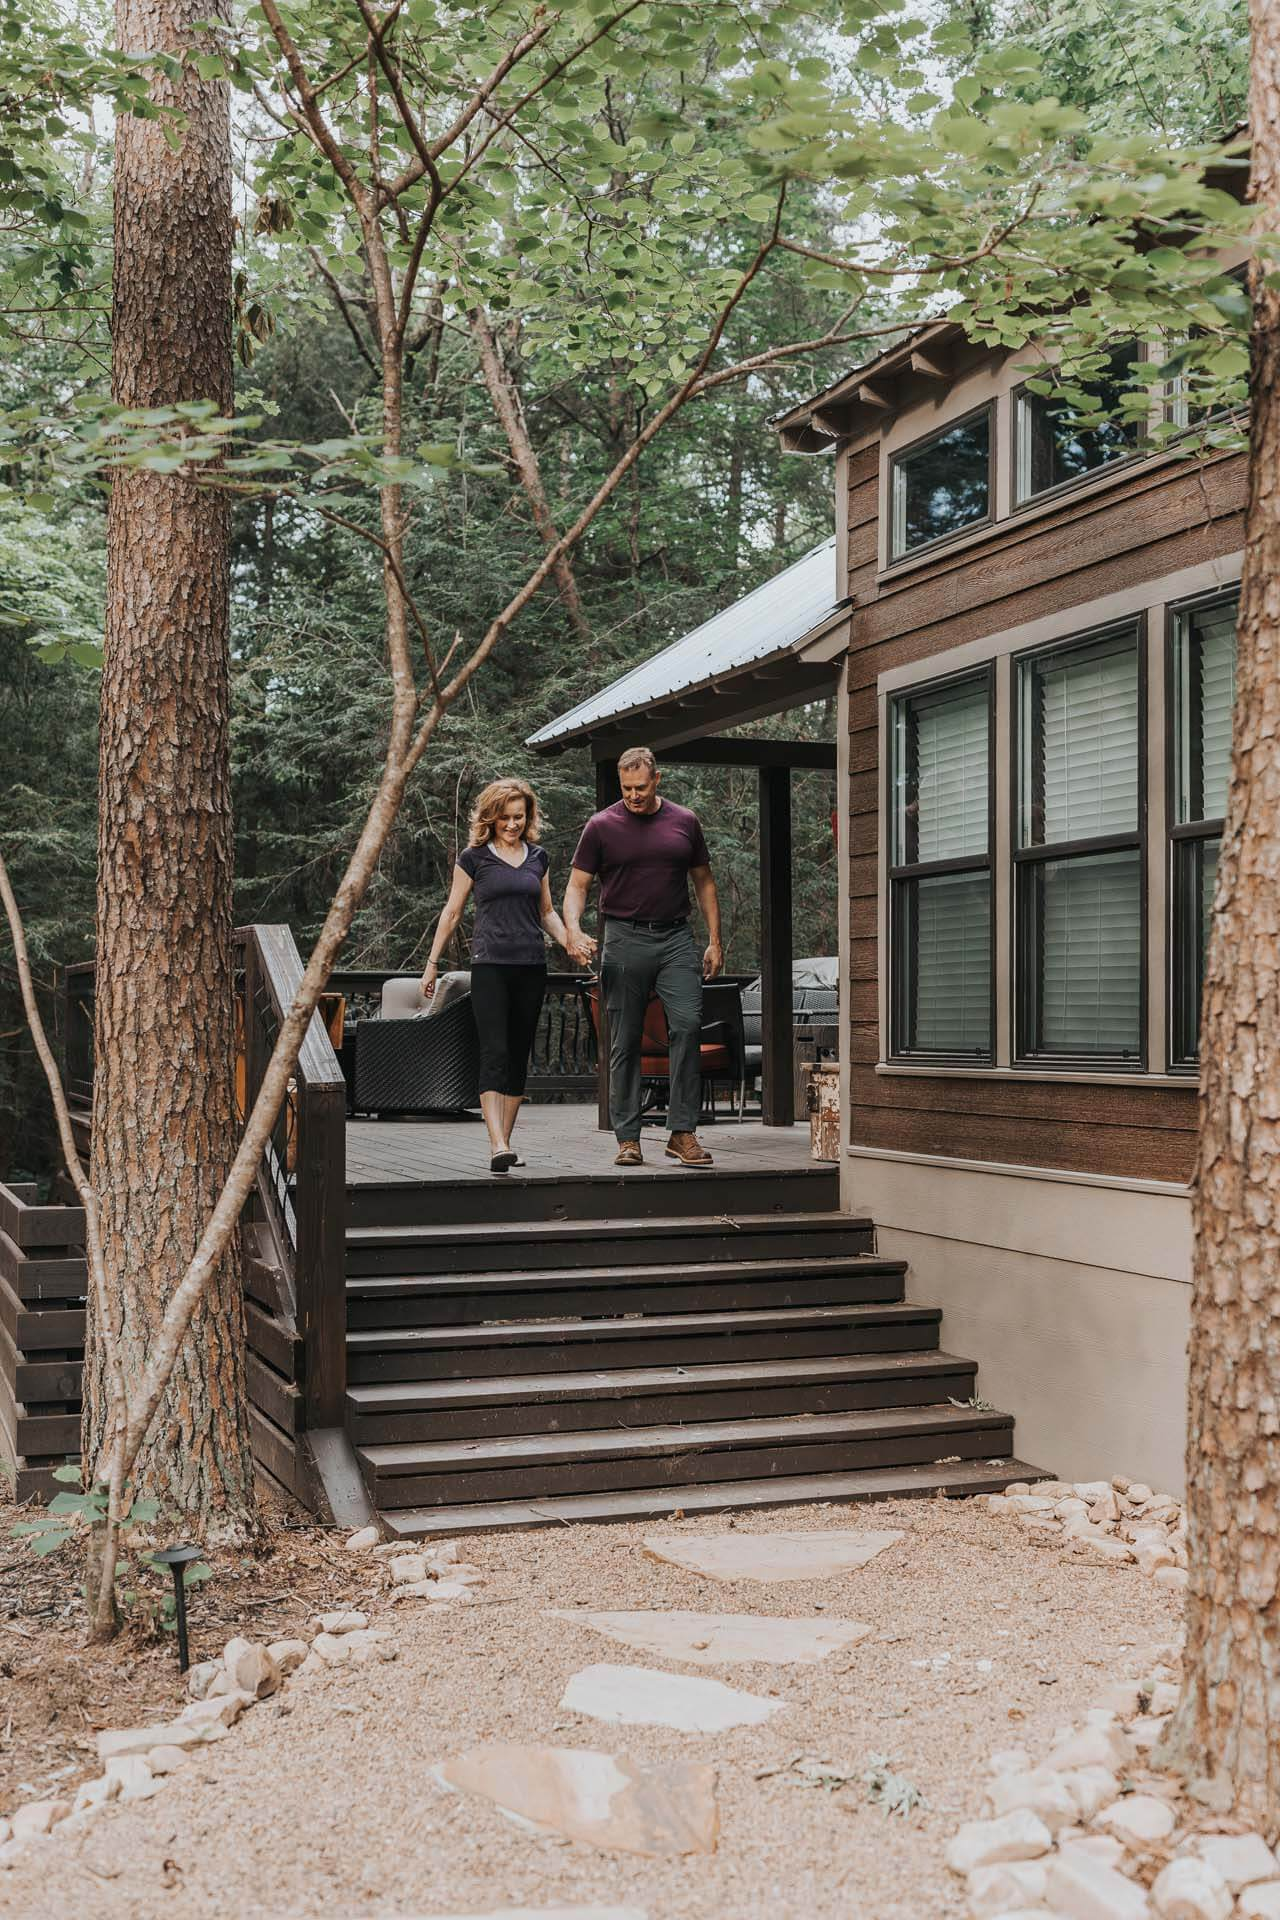 A couple walks down the steps of a tiny home in the woods